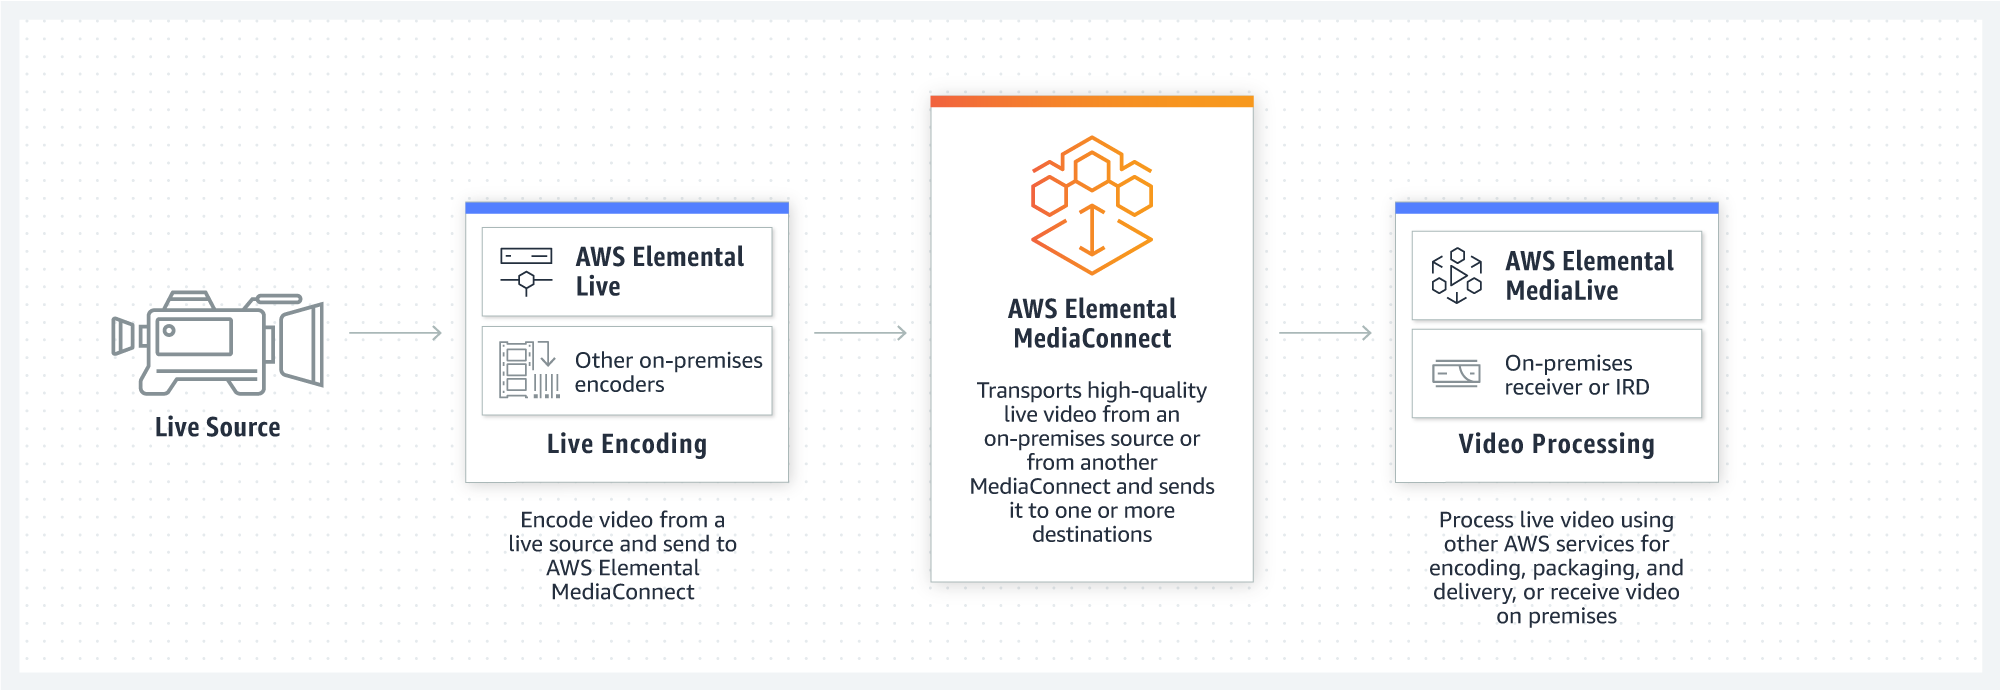 product-page-diagram-Elemental-MediaConnect@2x